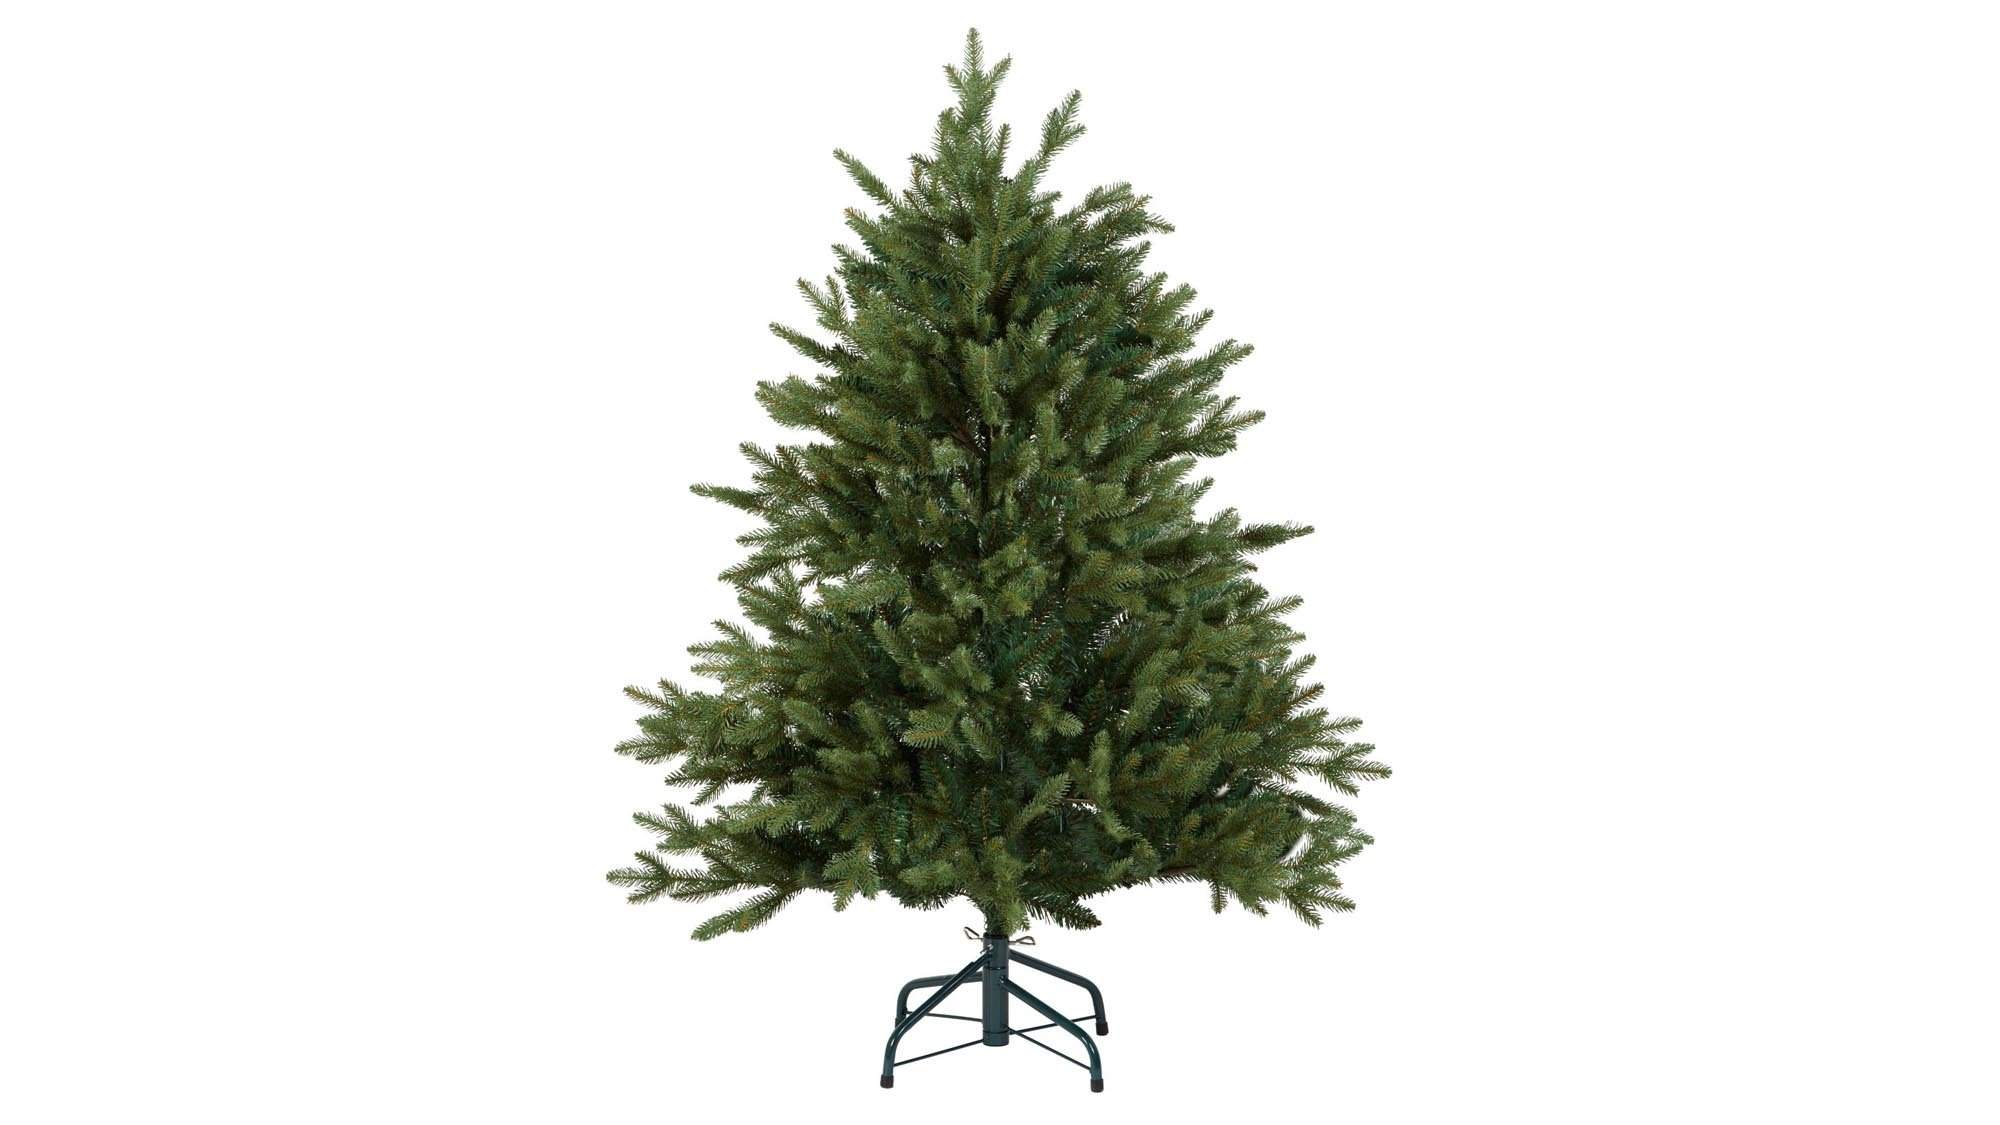 c6c713549d1 Best artificial Christmas tree 2018  Have a hassle-free Xmas with ...